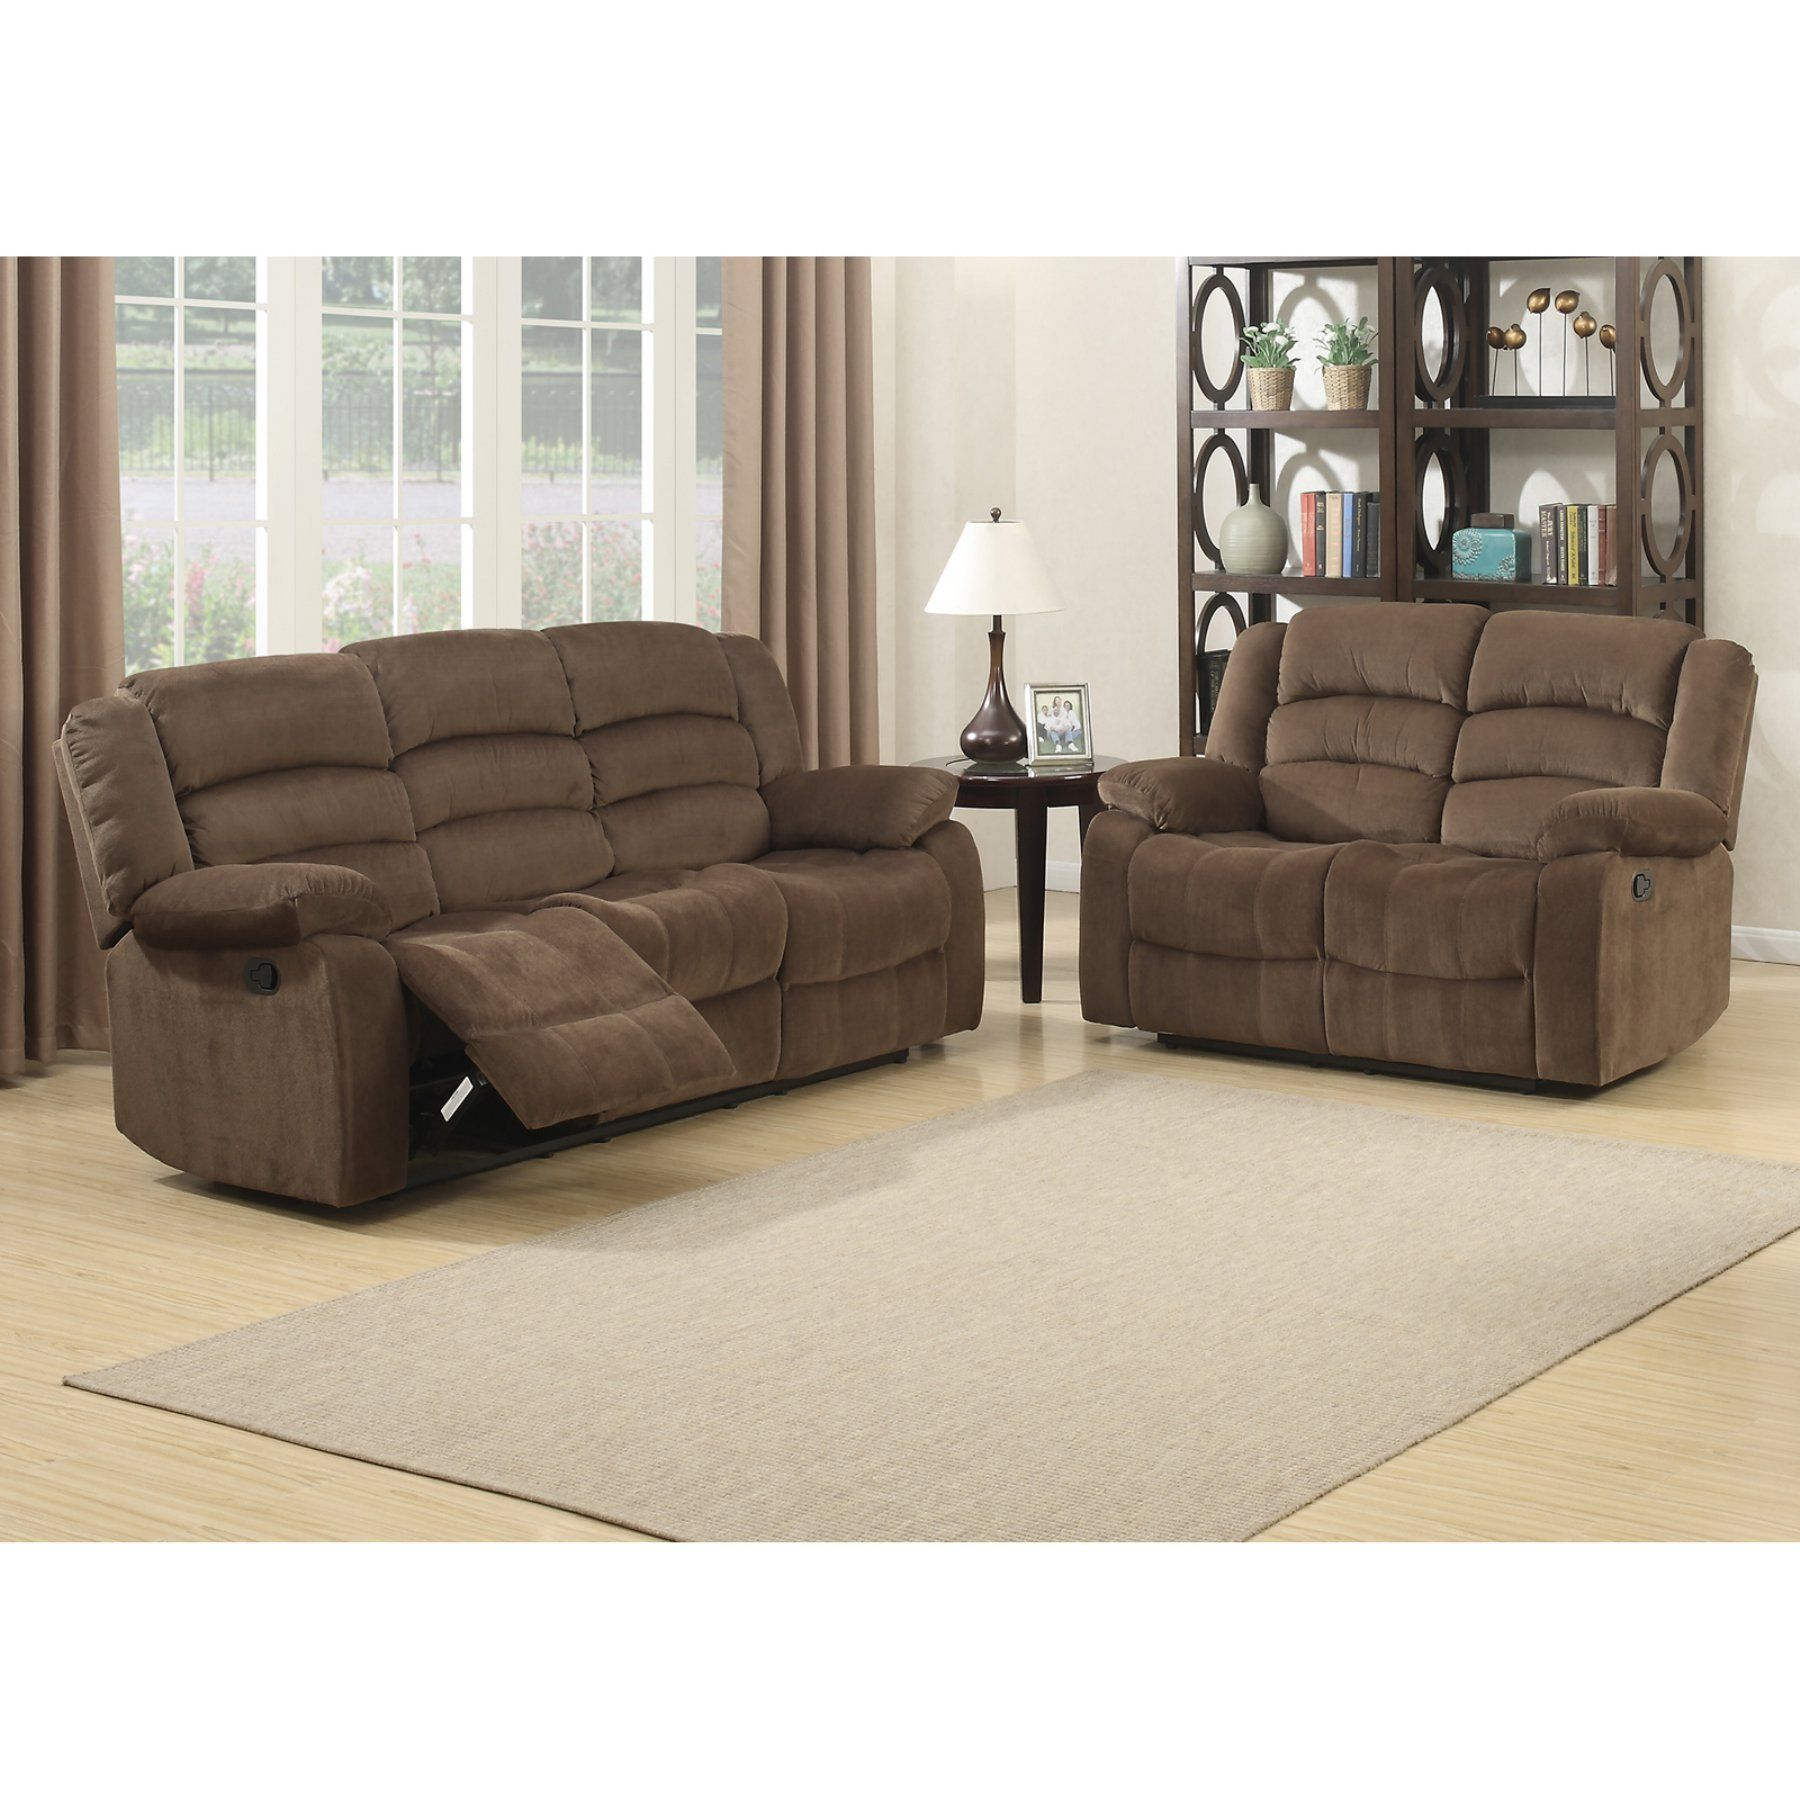 Christies Home Living Bill Collection 2 Piece